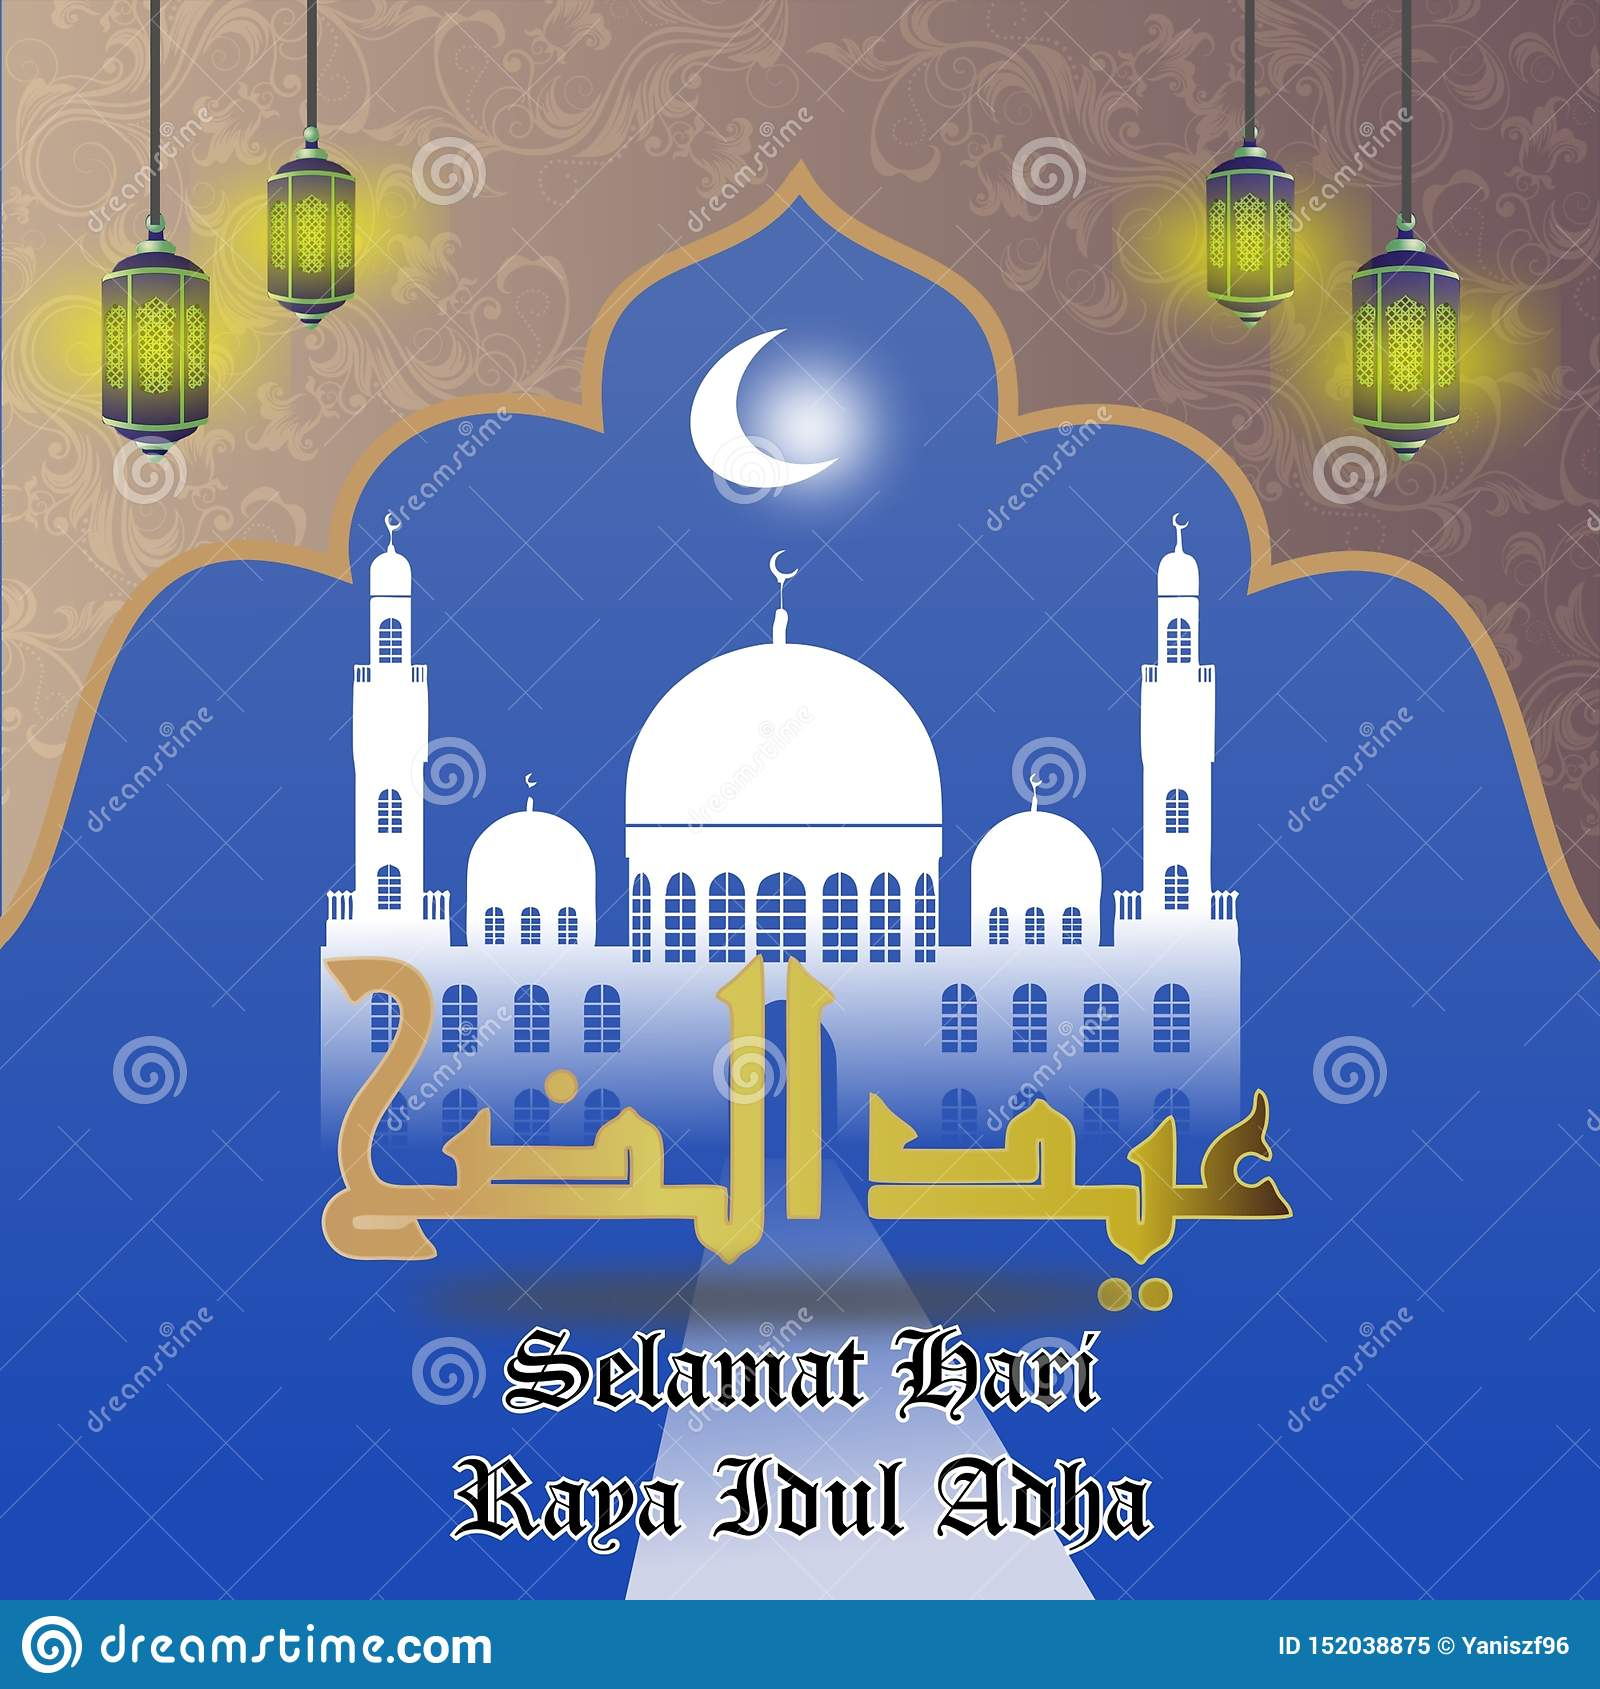 Selamat Hari Raya Idul Adha Stock Vector Illustration Of 2020 Hari 152038875